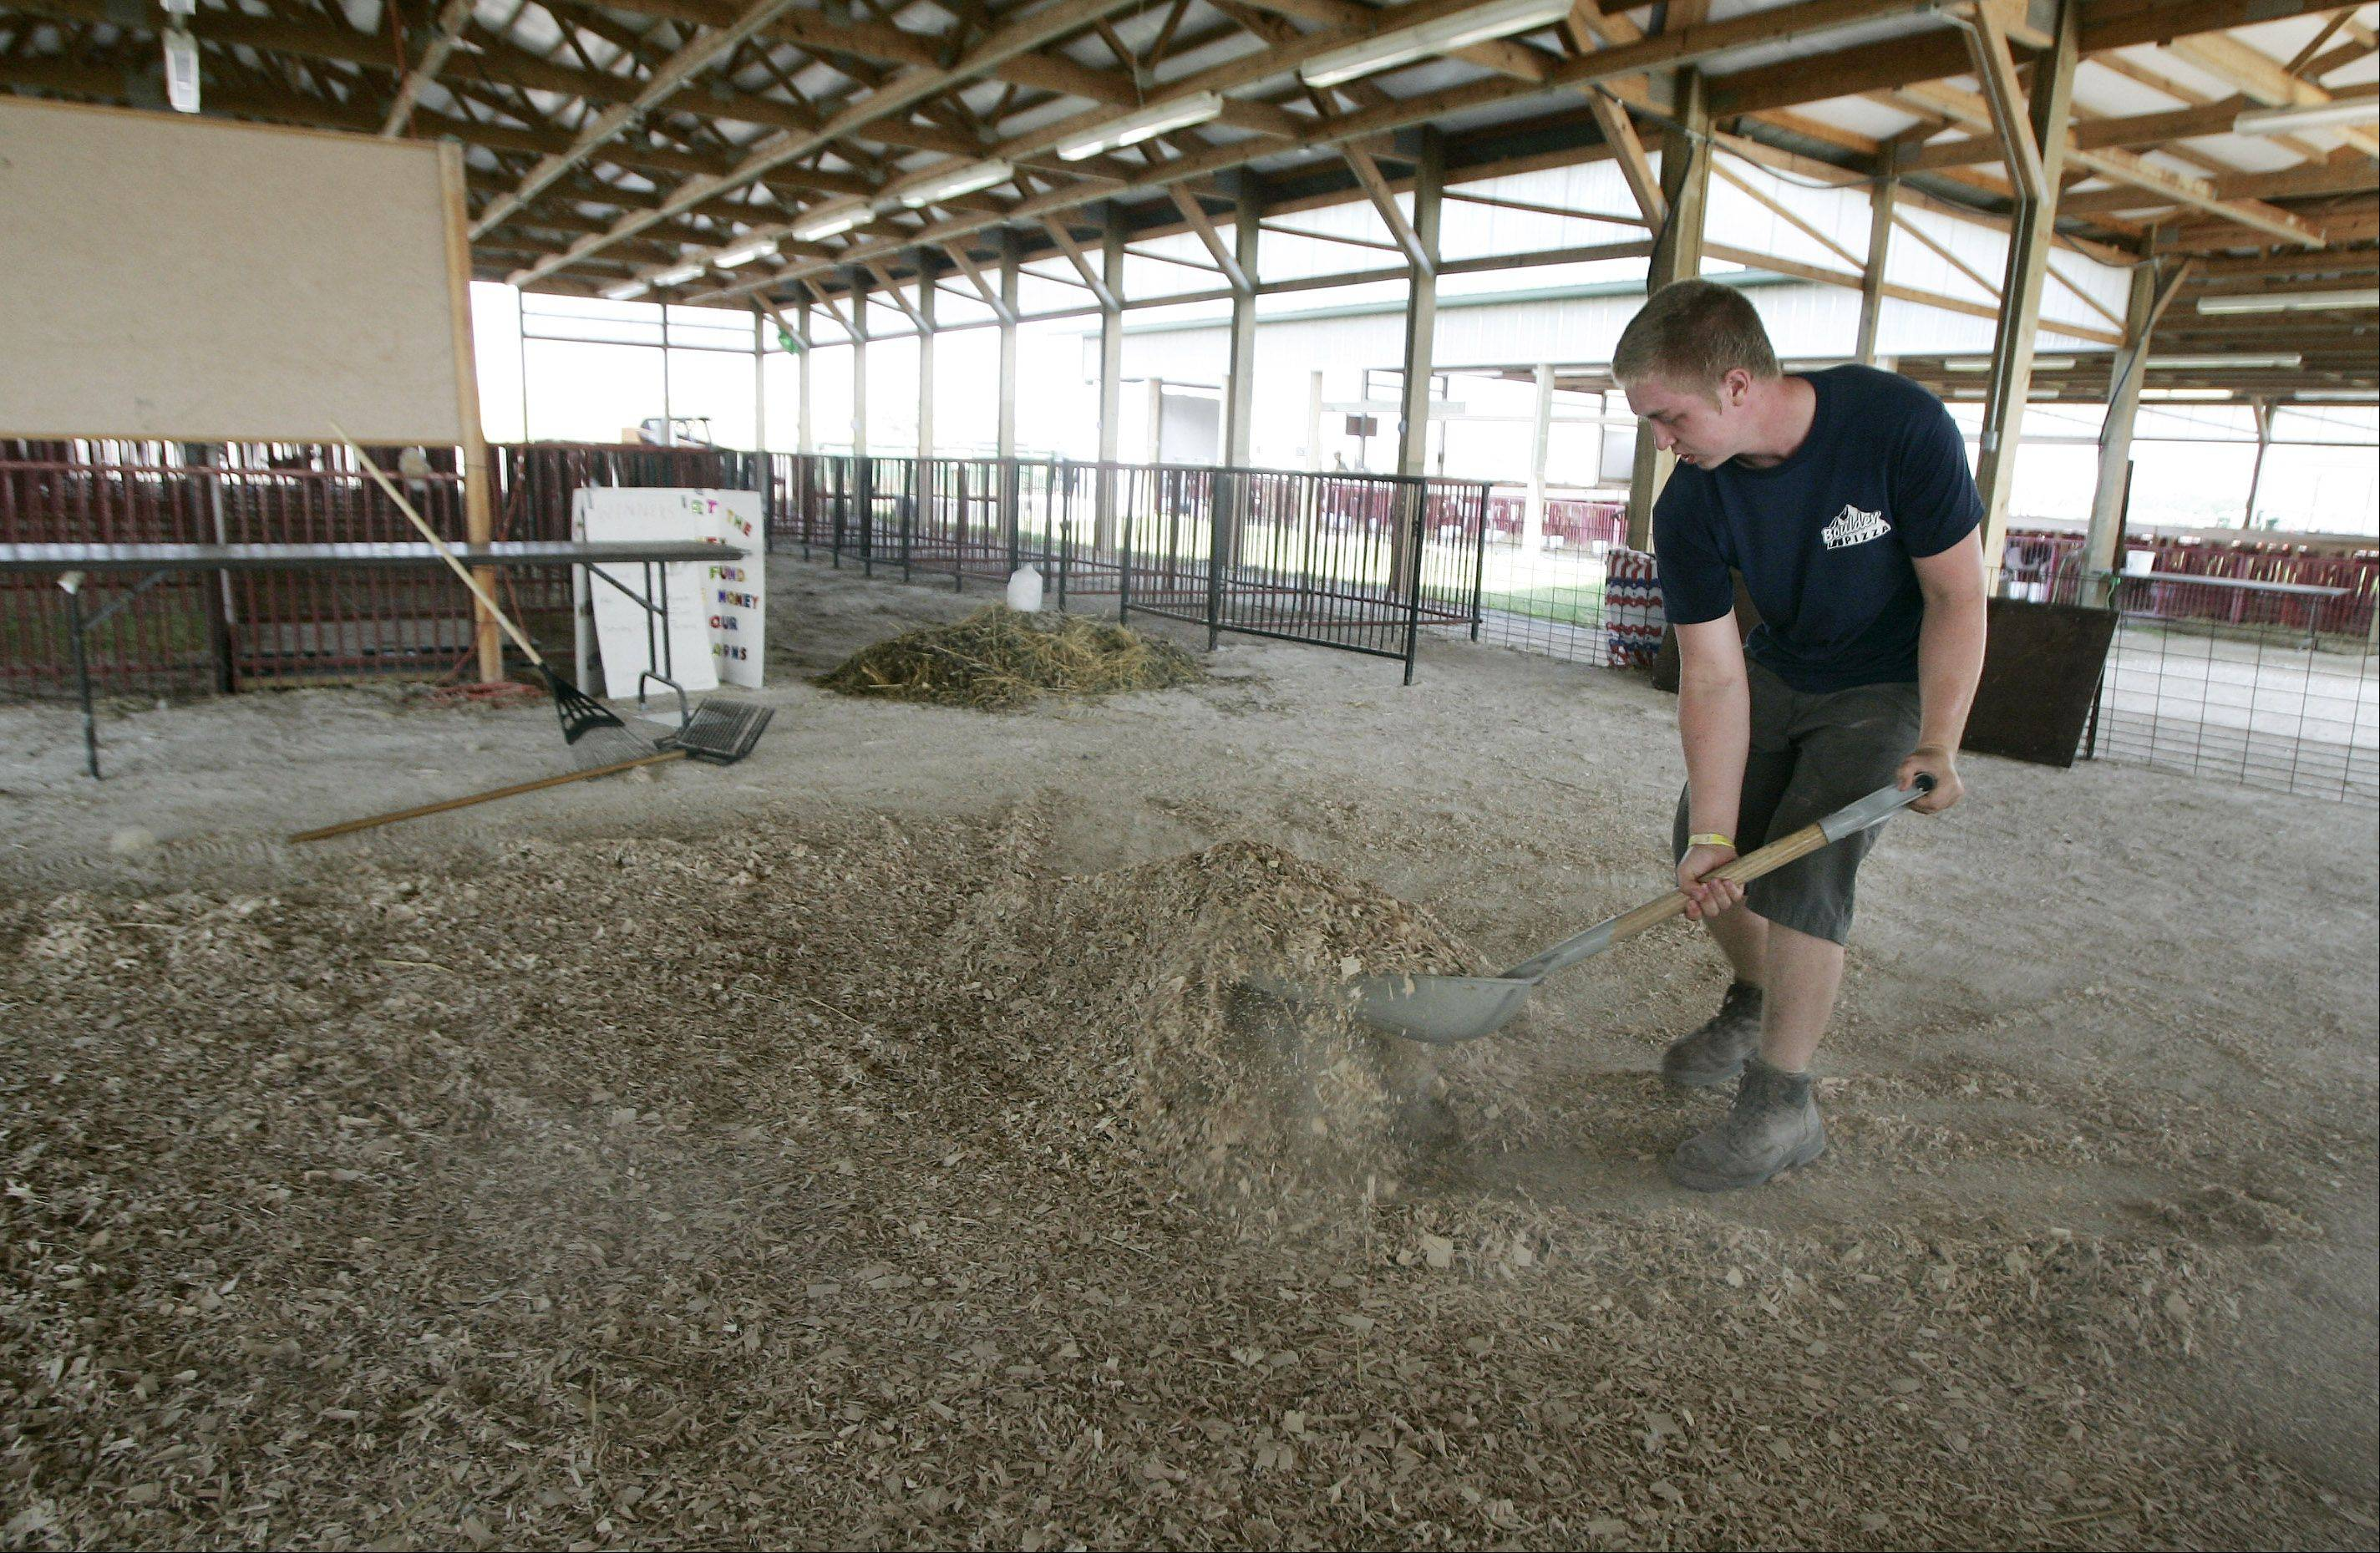 Clayton Larson, 17, of Grayslake cleans the barns Monday at the Lake County fairgrounds in Grayslake. Despite a drop in attendance for this year's fair, organizers said Monday they still have much to celebrate.